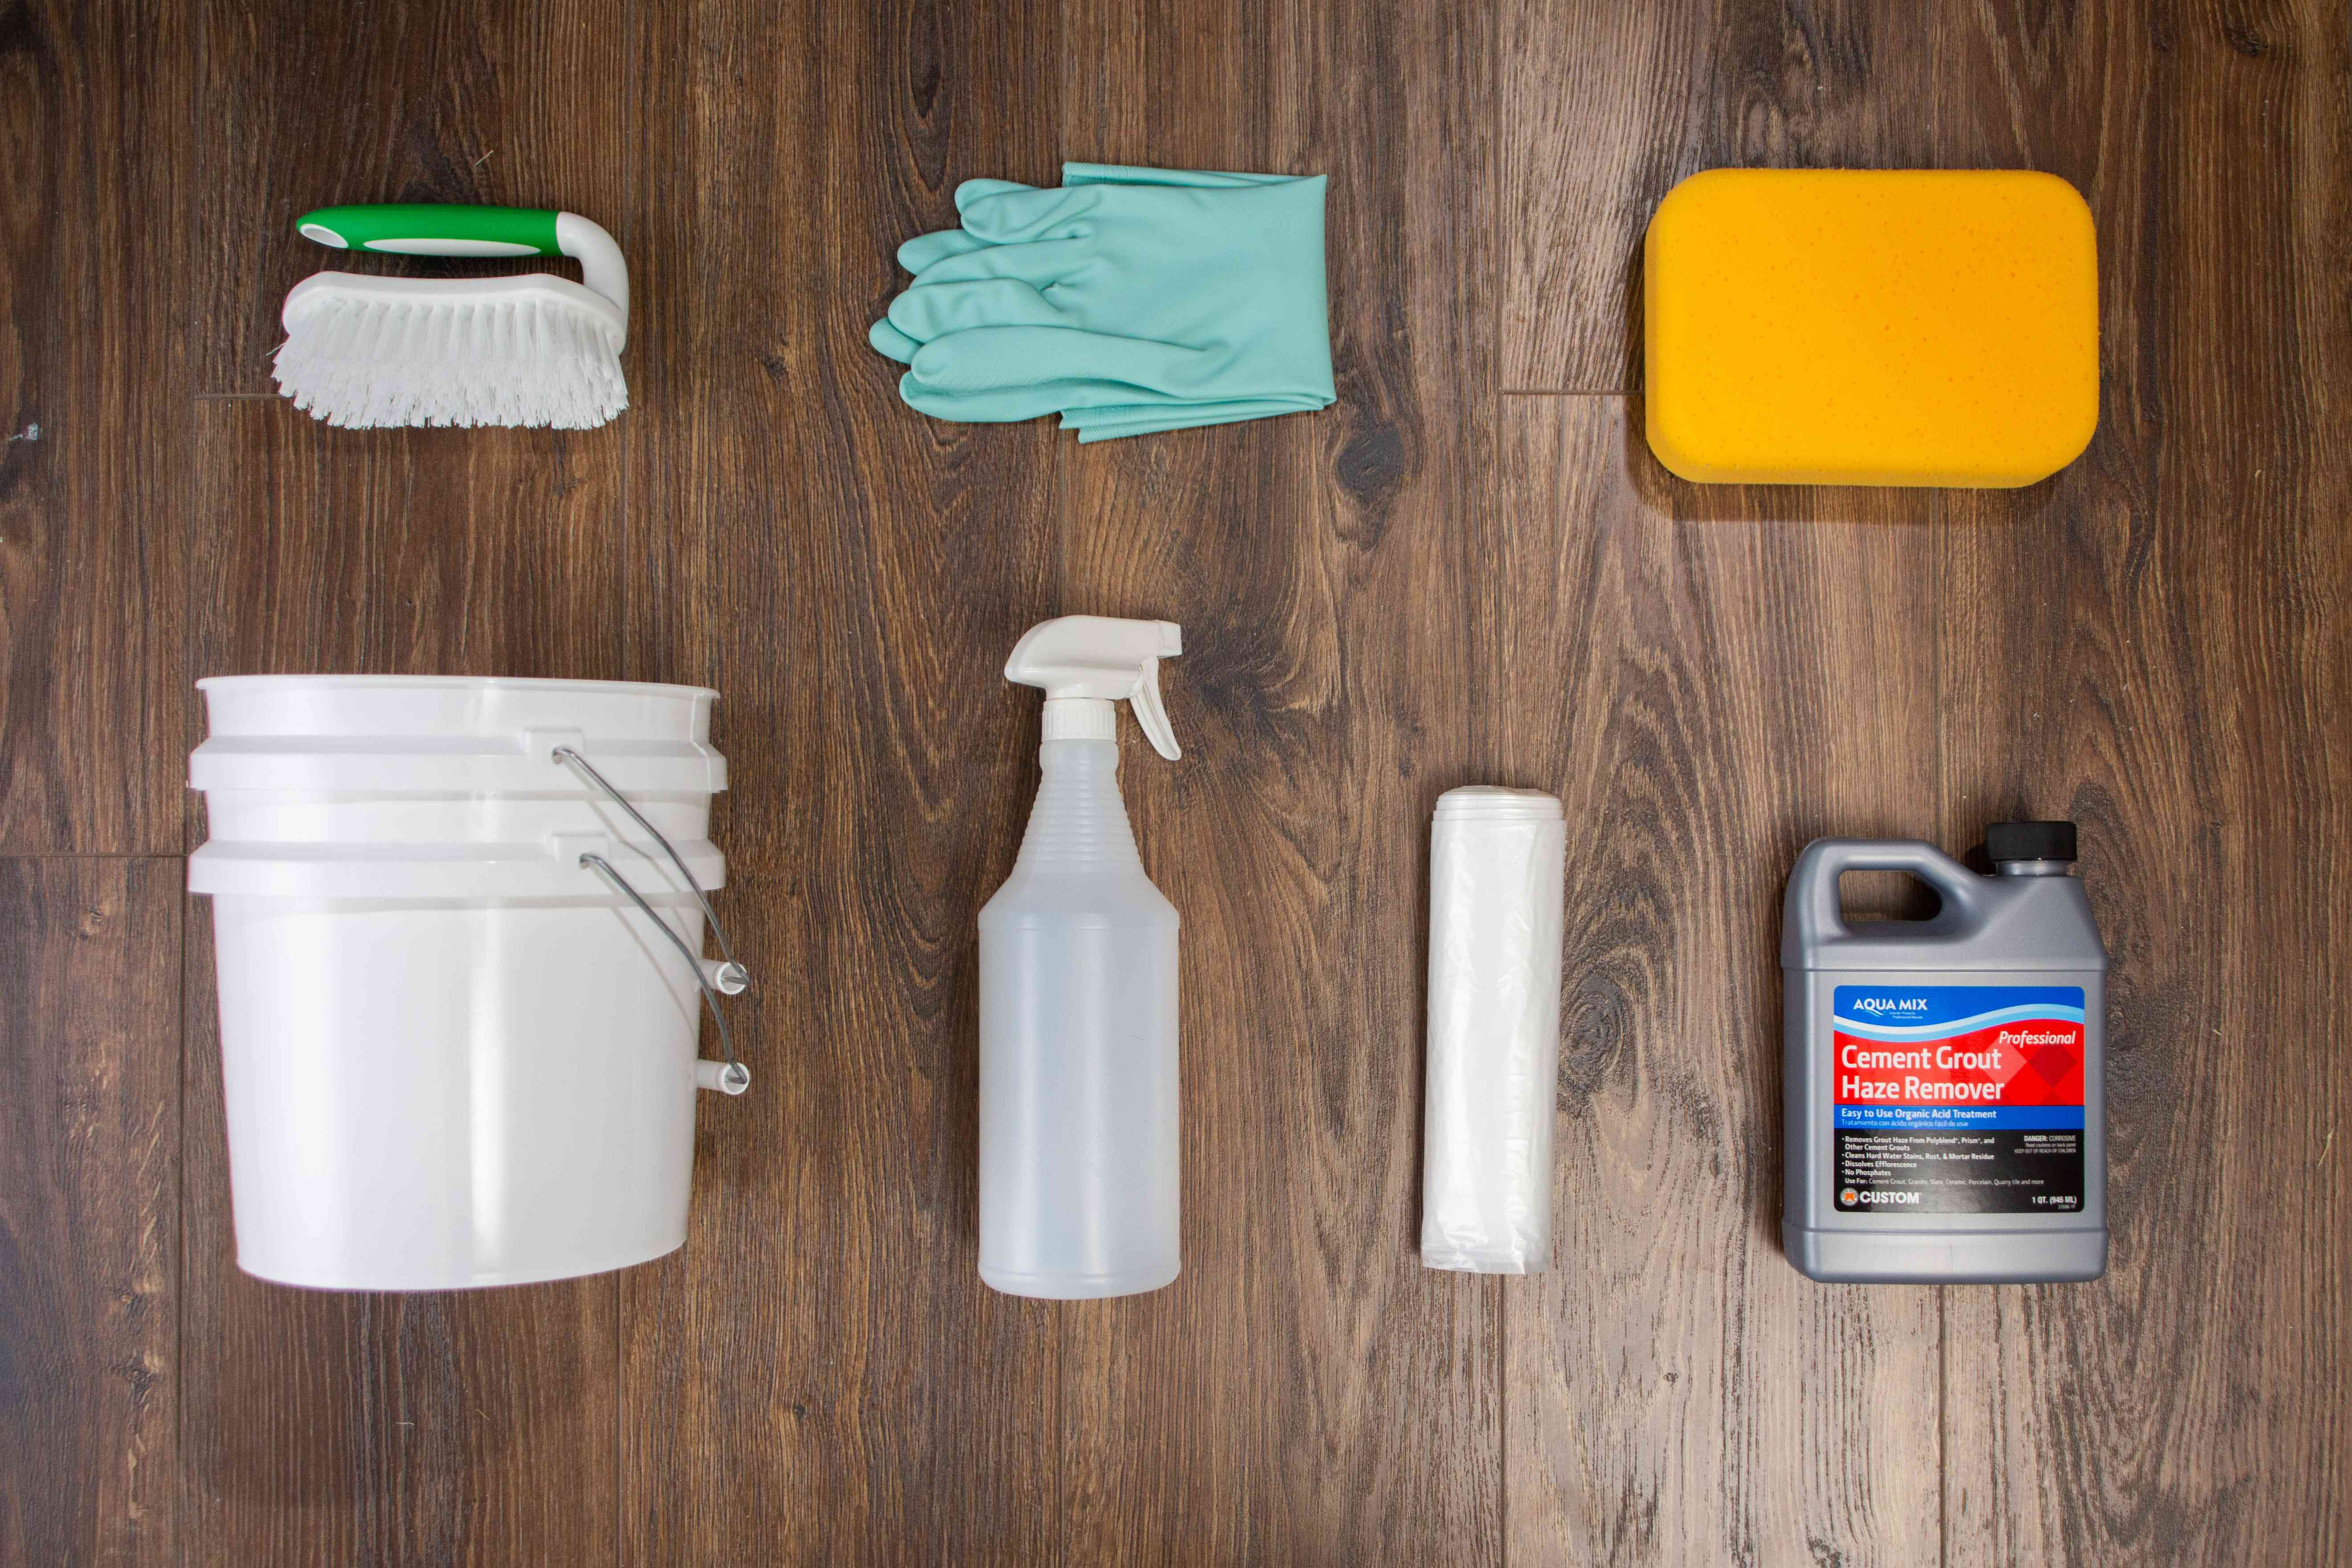 Tools and materials to clean grout haze